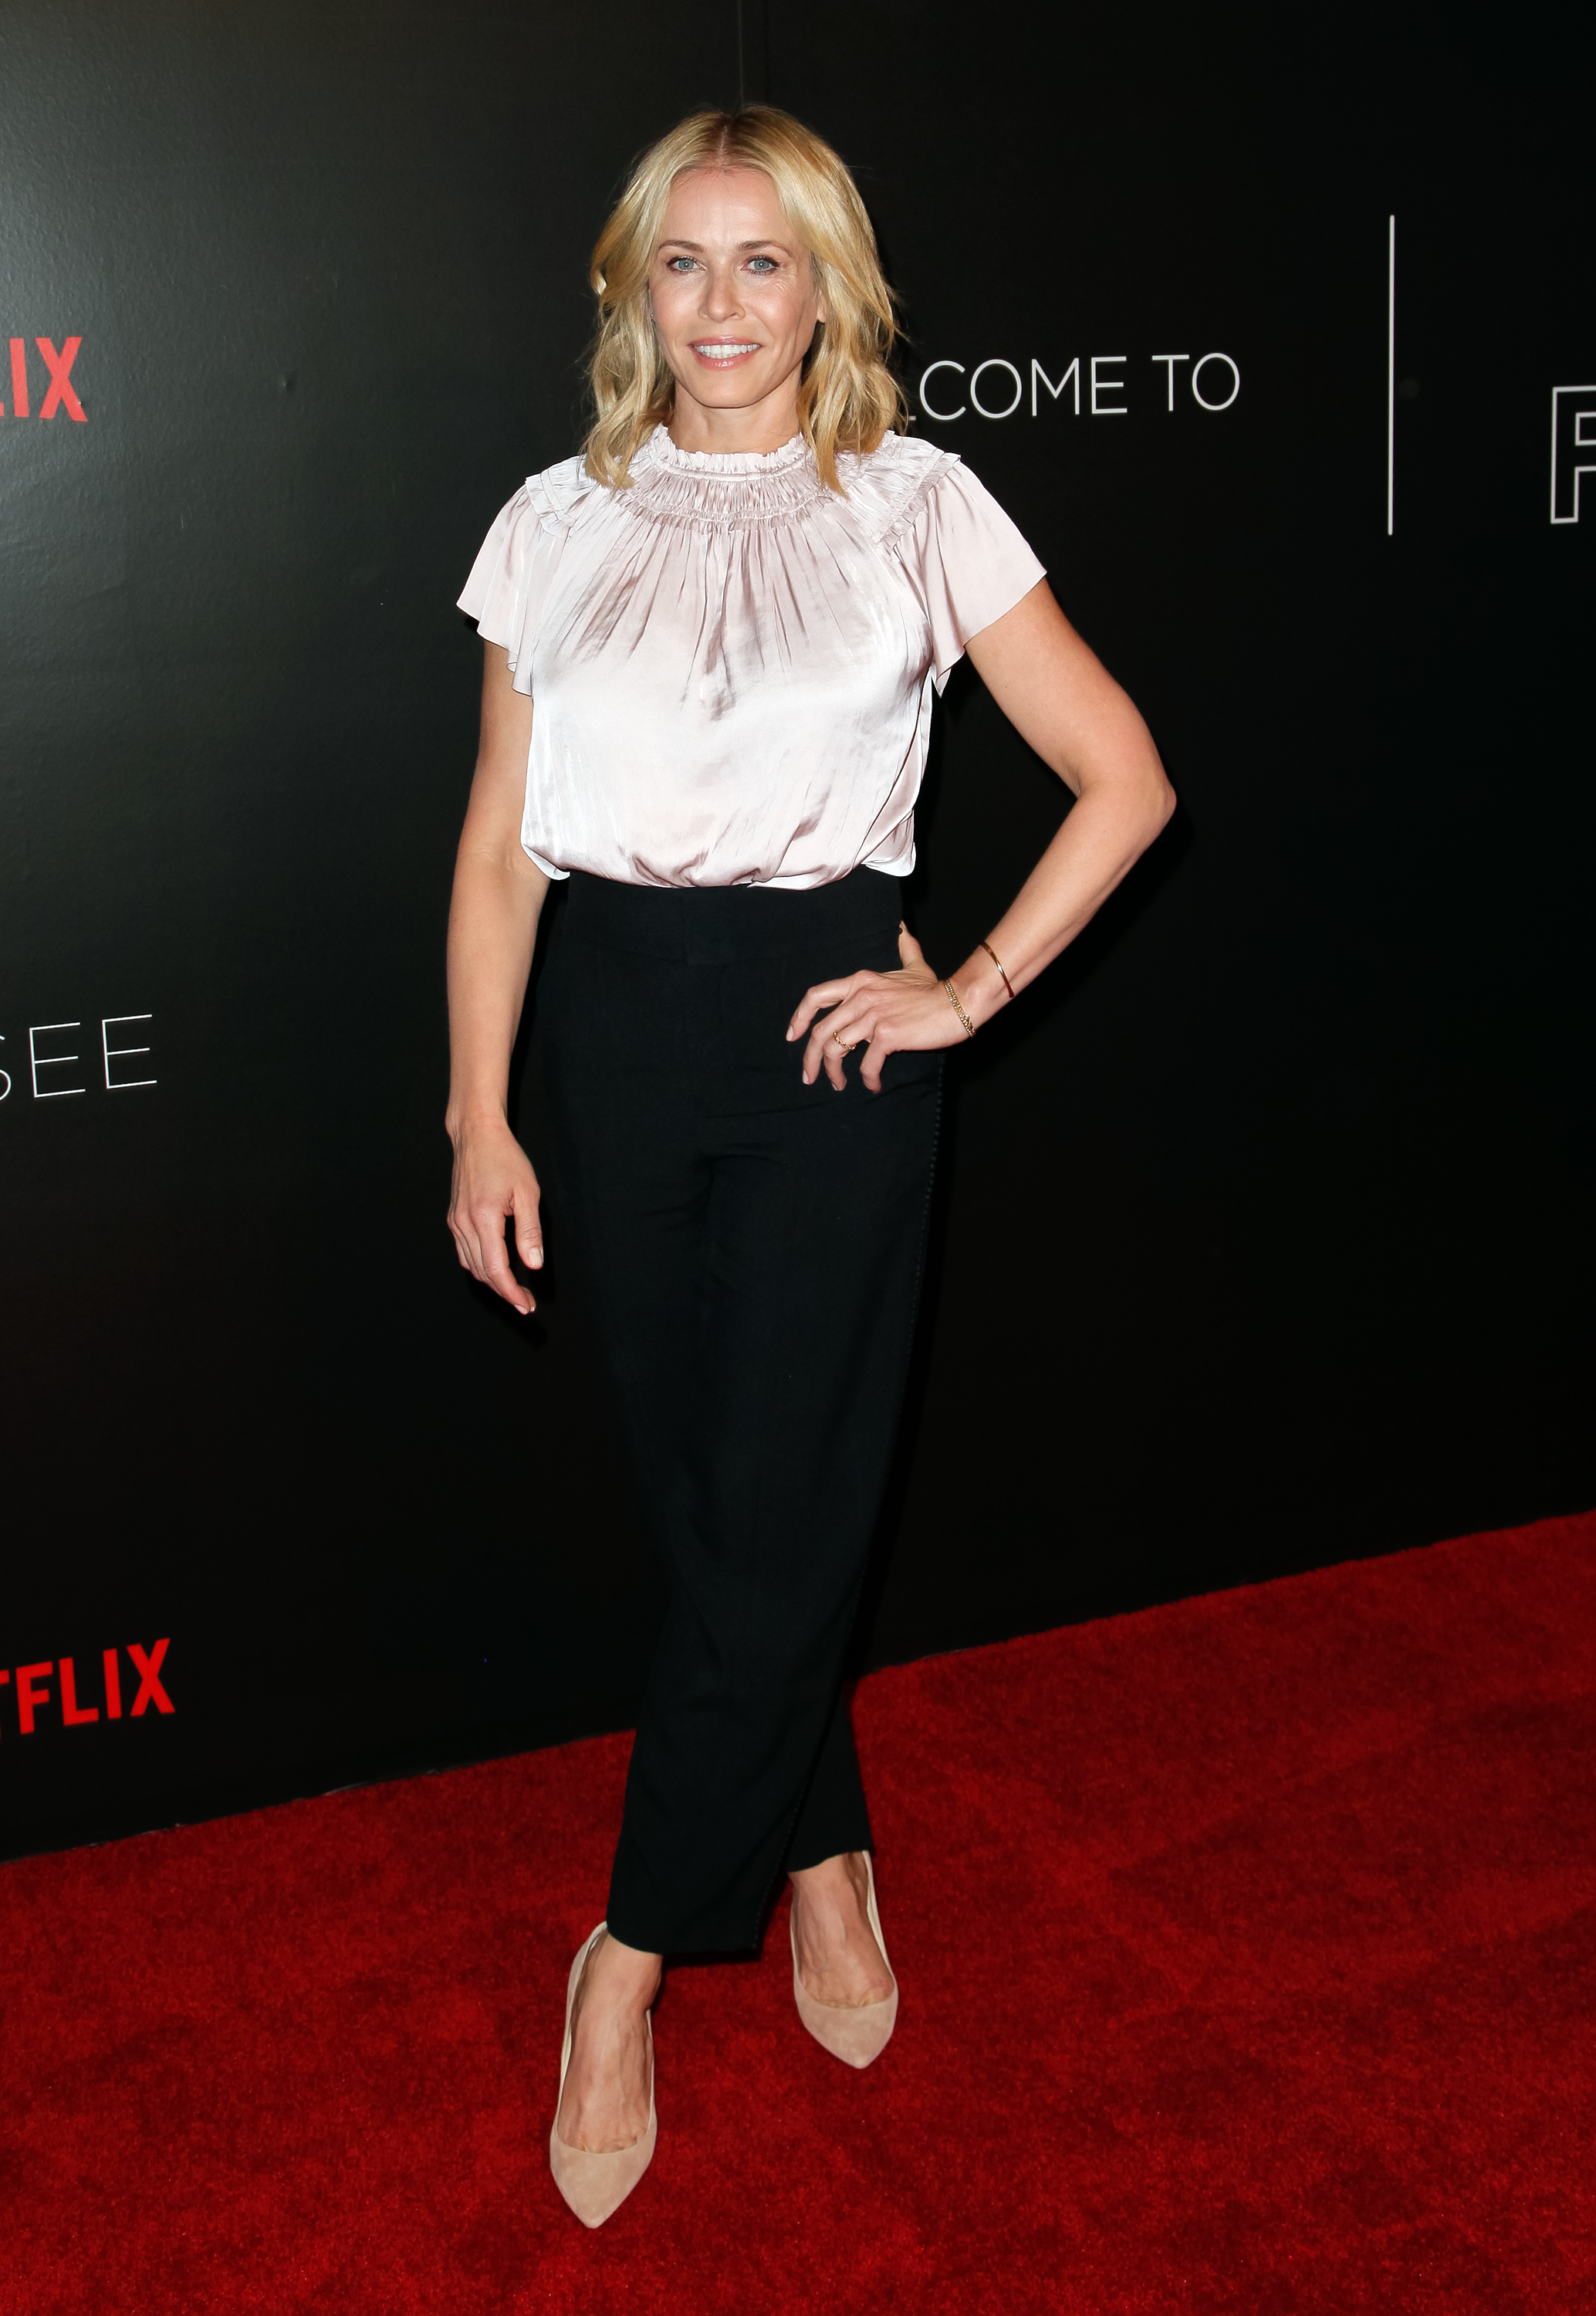 Netflix Comedy Panel For Your Consideration Event - Arrivals